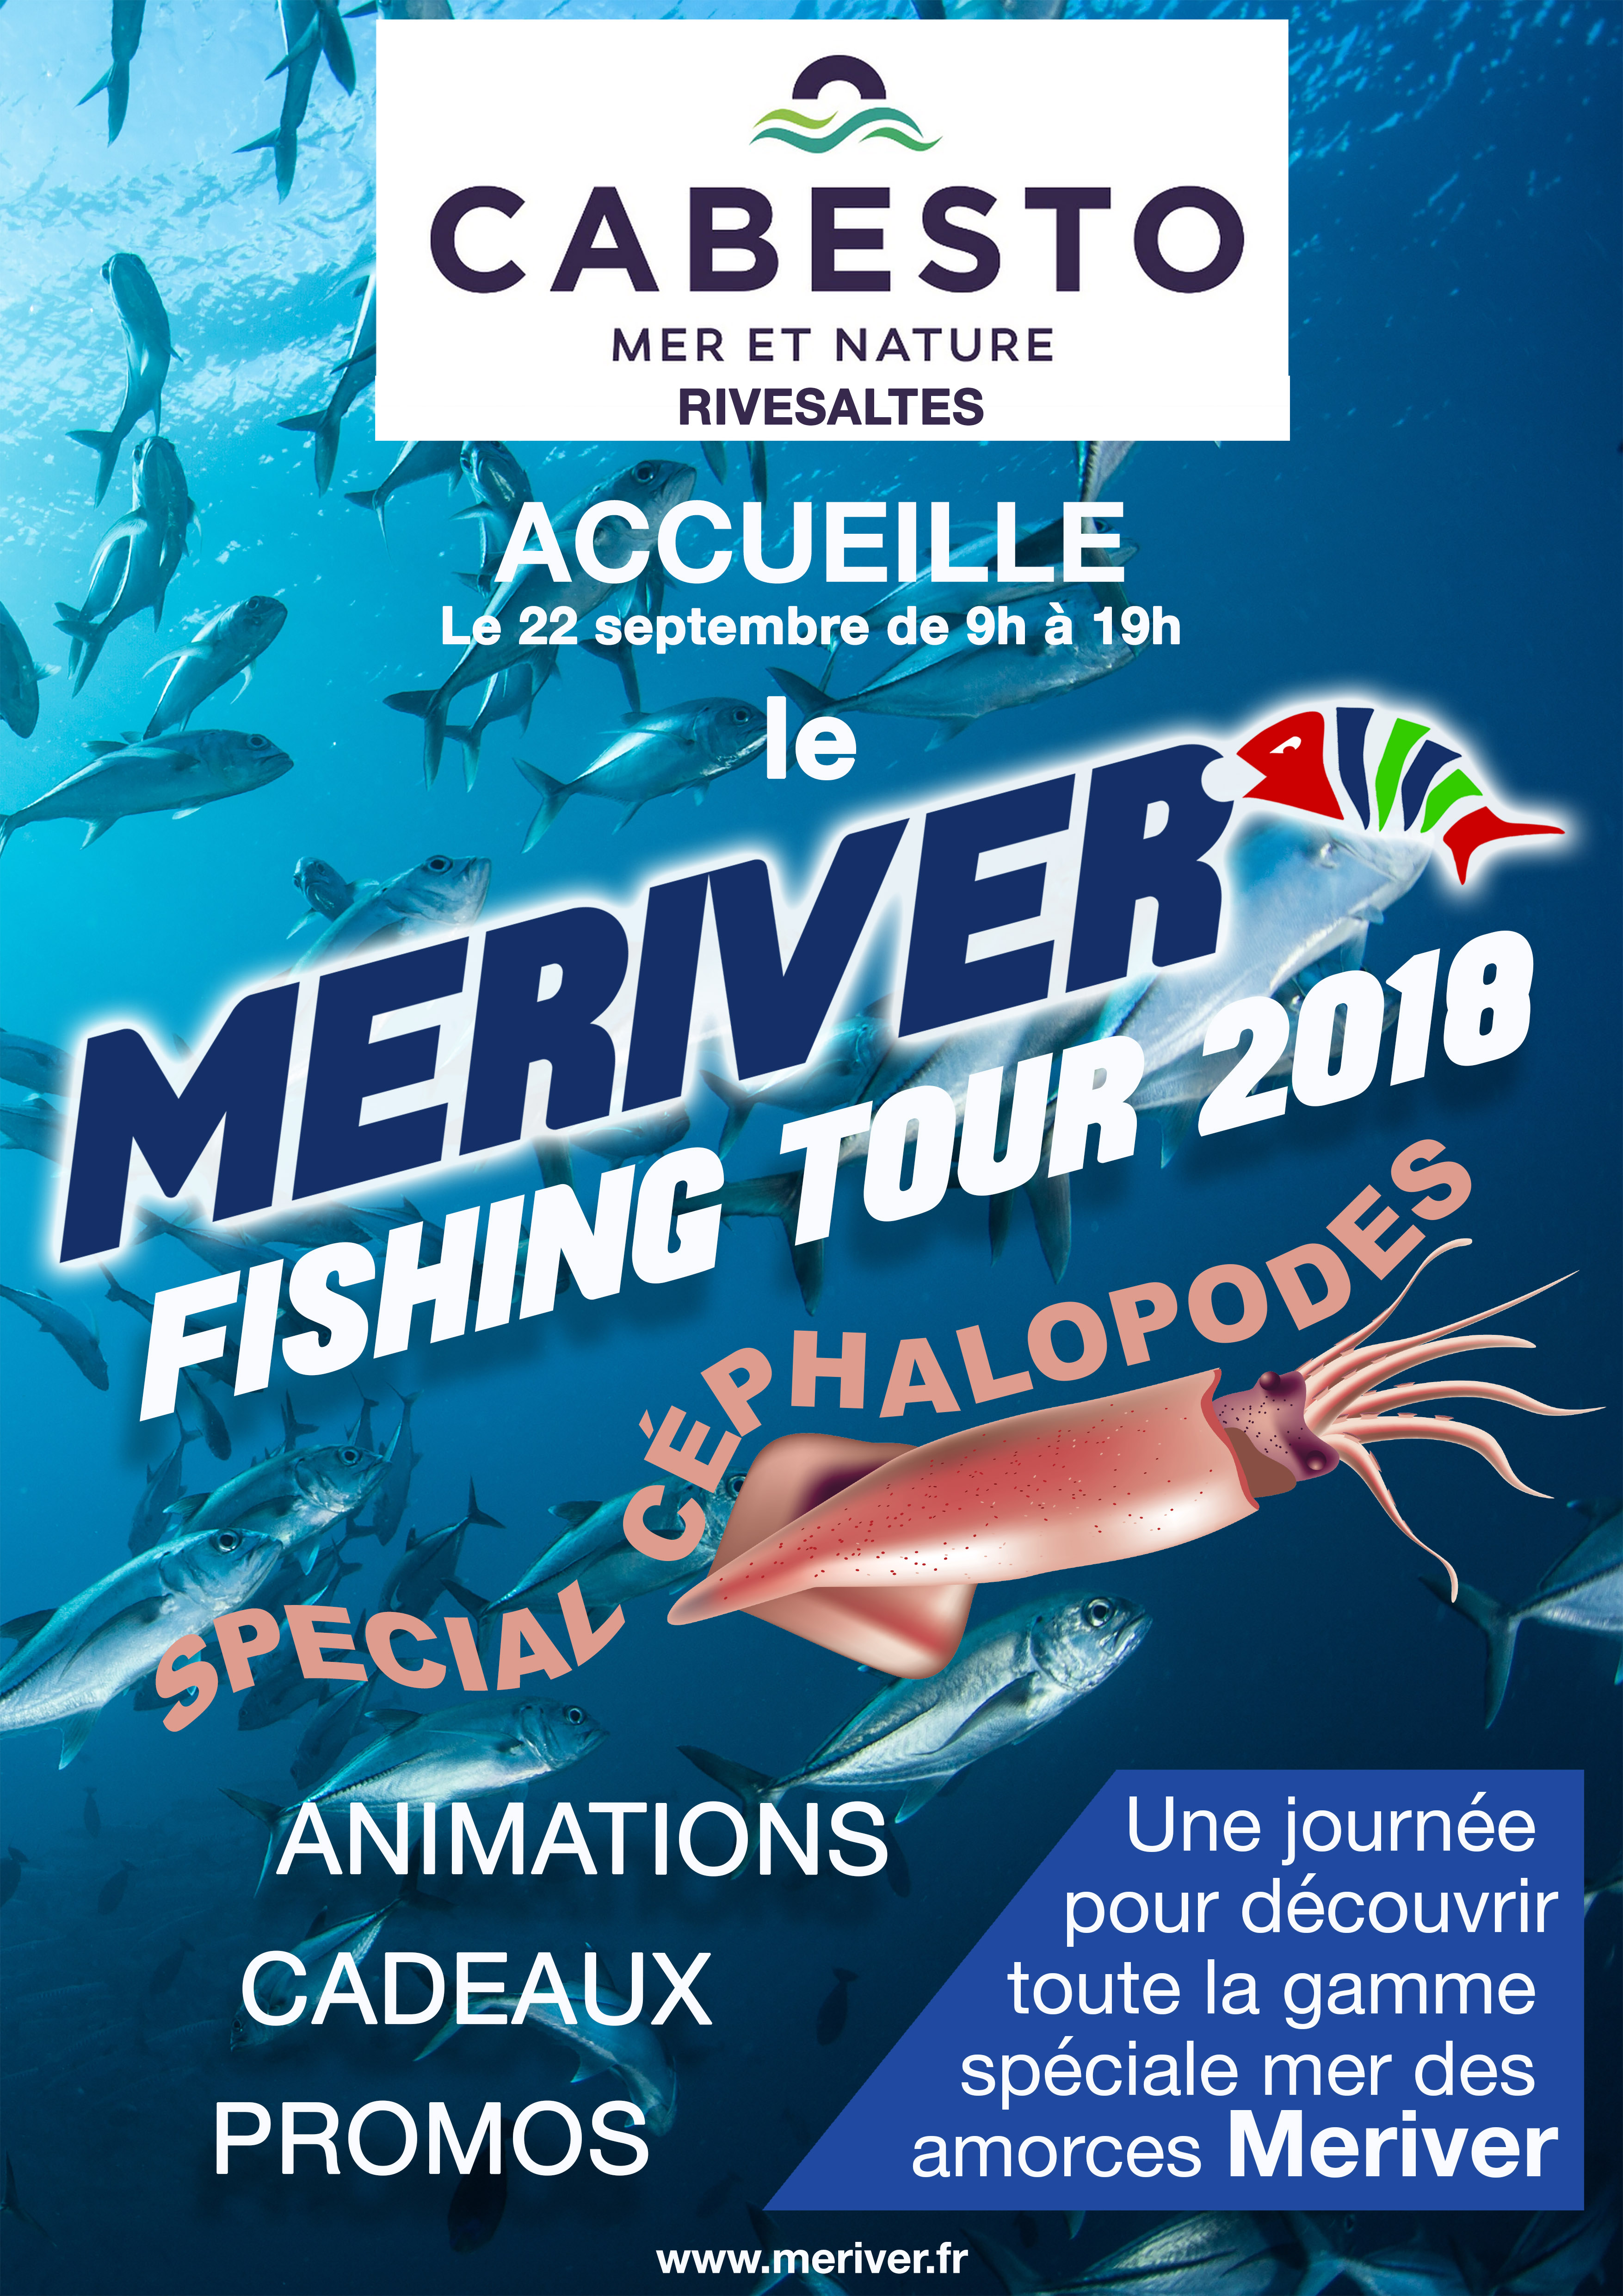 Meriver Fishing tour 2018 RIVESALTES